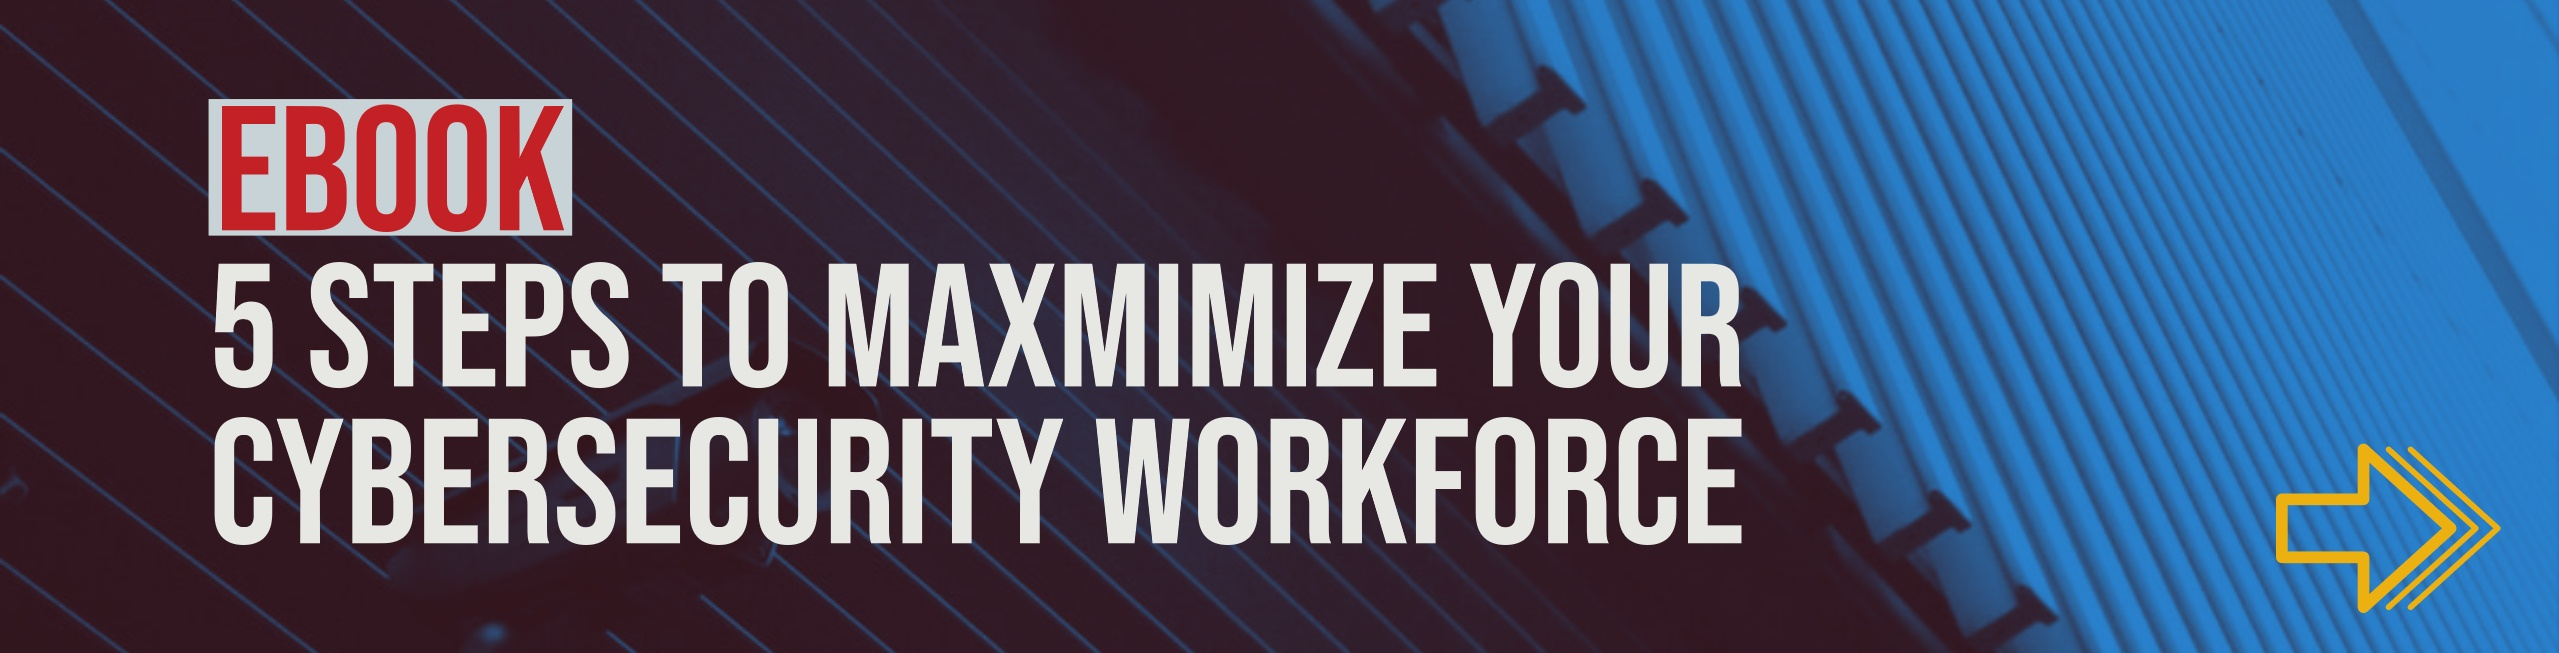 Security- 5 Steps to Maxmimize your Cybersecurity Workforce